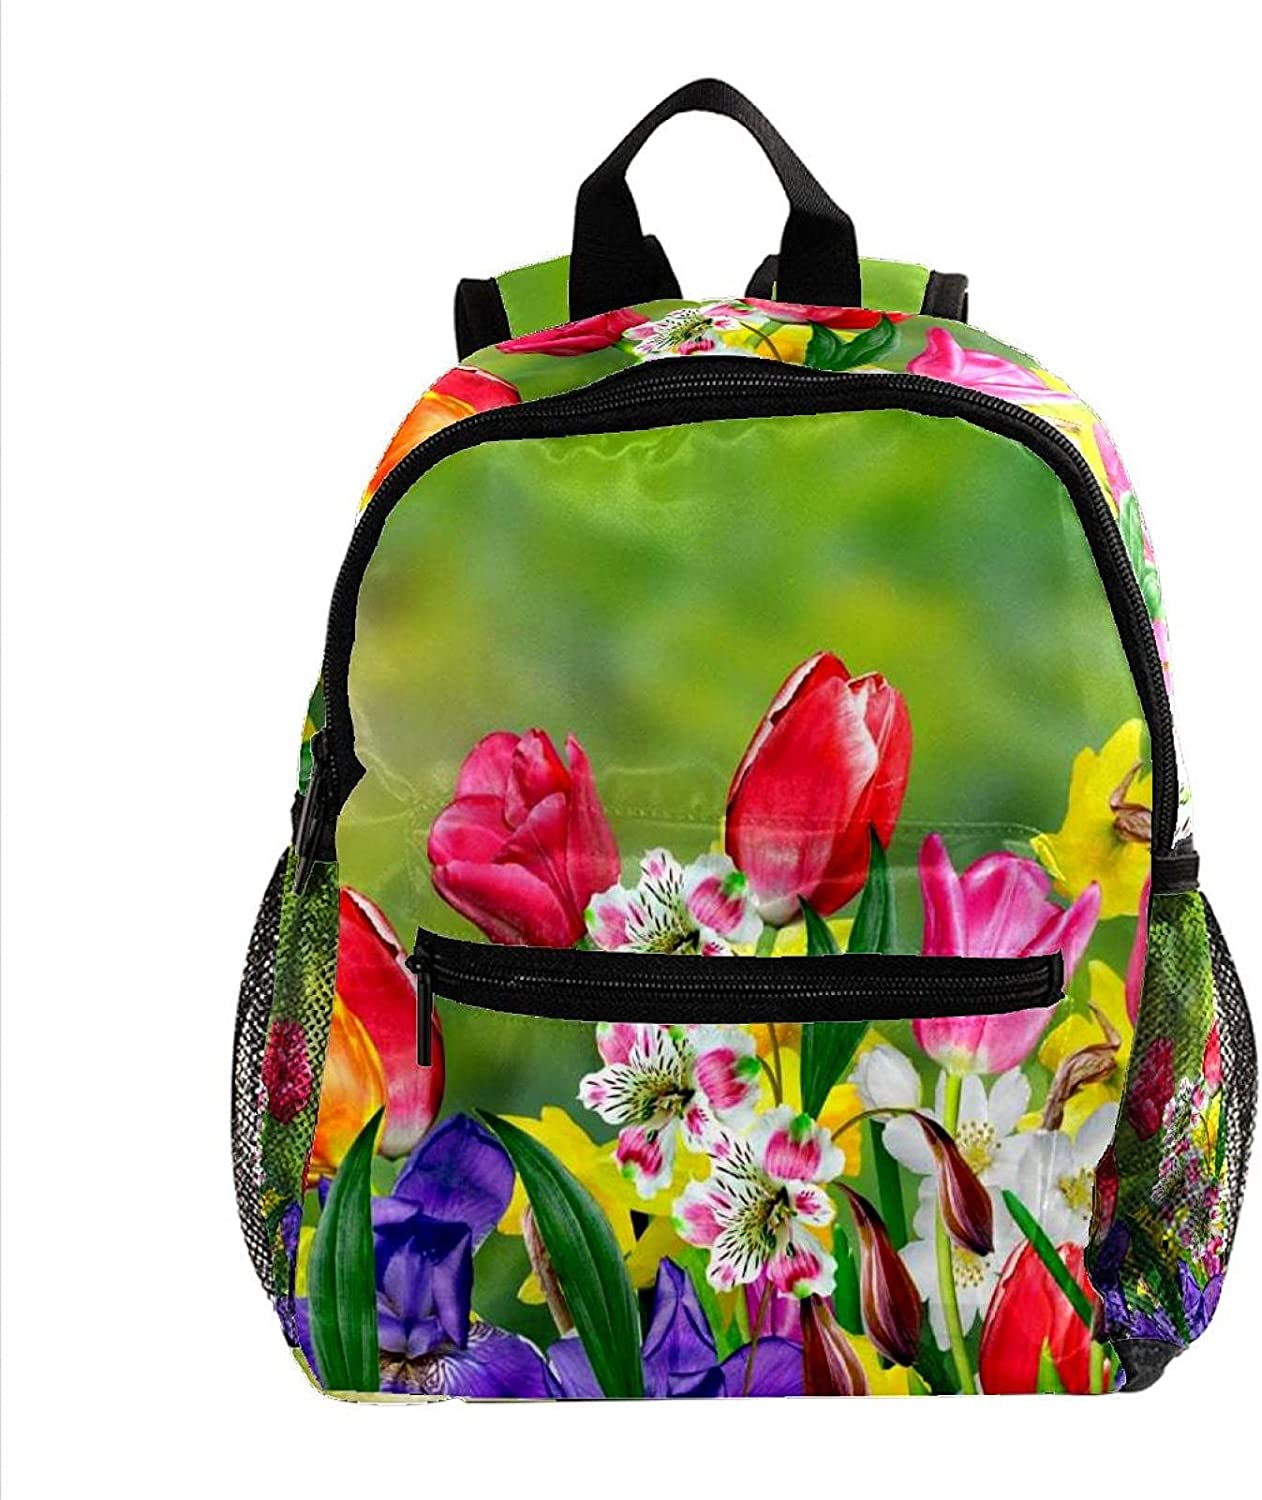 Backpack for Girls Boy Outdoor Walk Daypack Easy-to-use tulip Pri Bag Outlet sale feature Travel